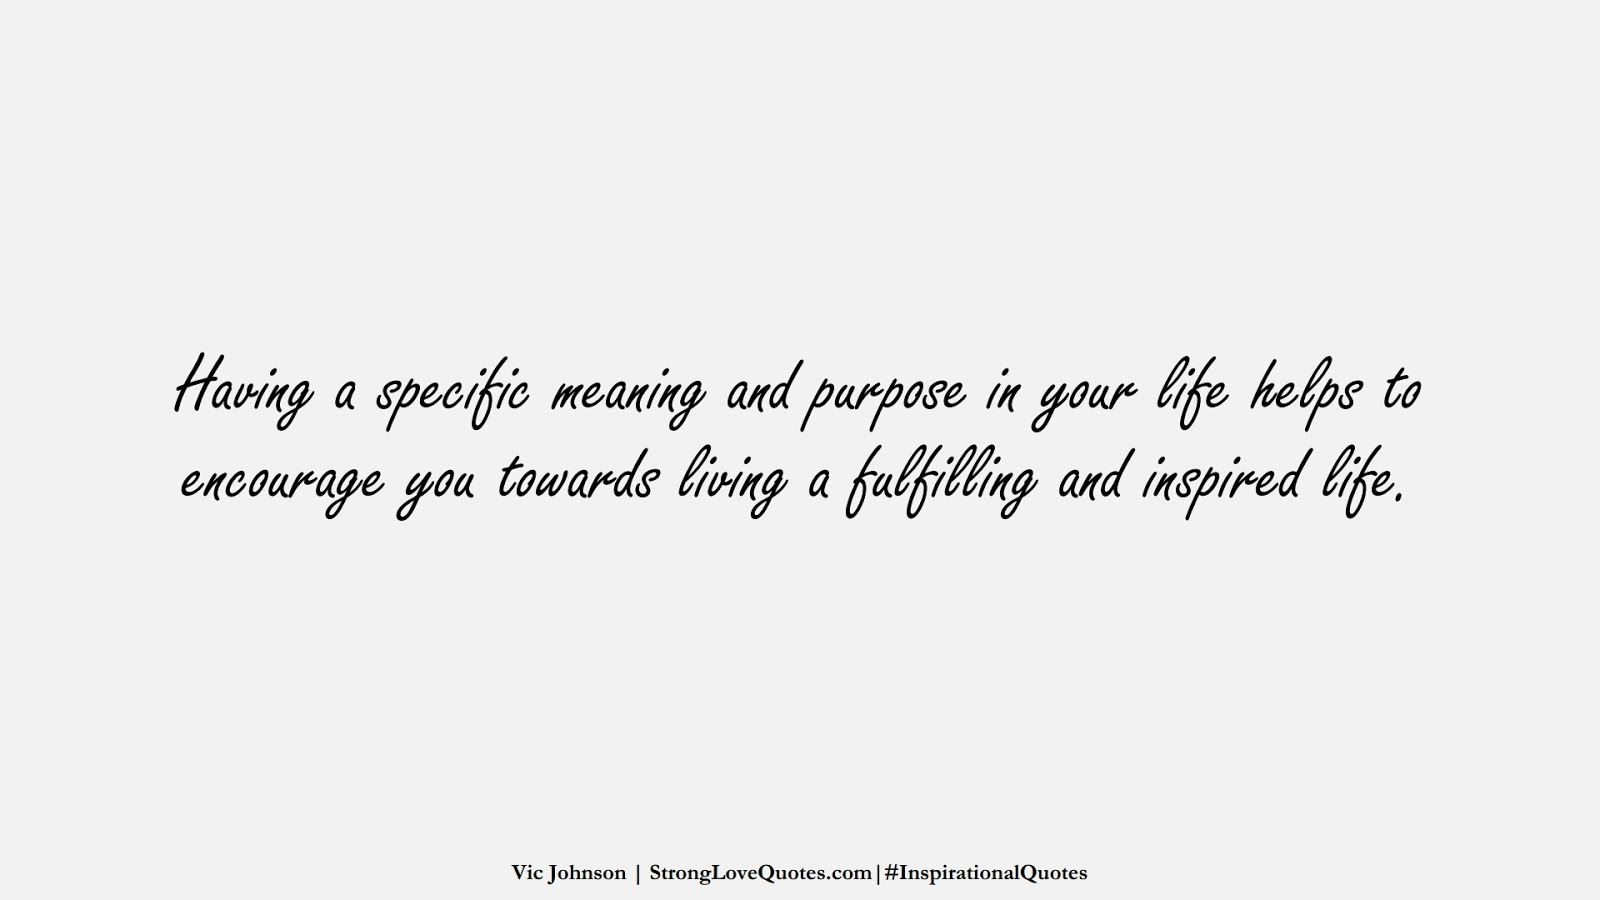 Having a specific meaning and purpose in your life helps to encourage you towards living a fulfilling and inspired life. (Vic Johnson);  #InspirationalQuotes